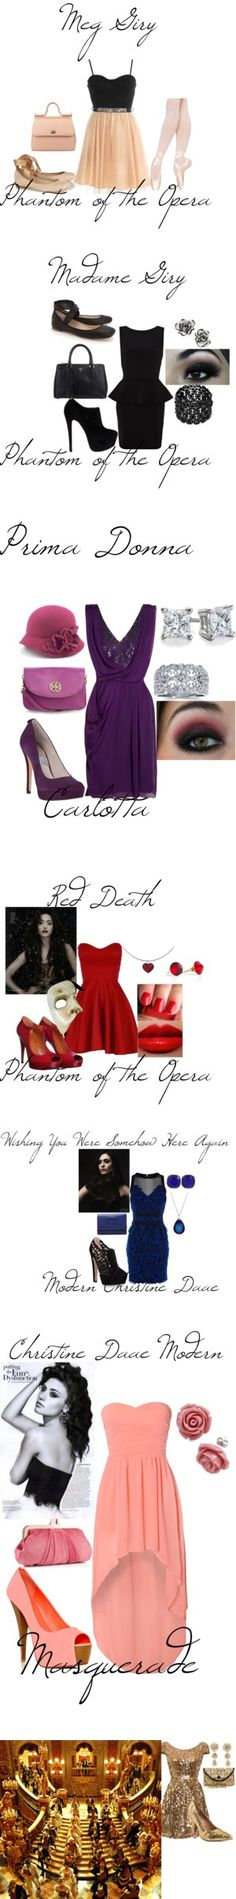 """Phantom of the Opera Modern"" by avarahebert ❤ liked on Polyvore"